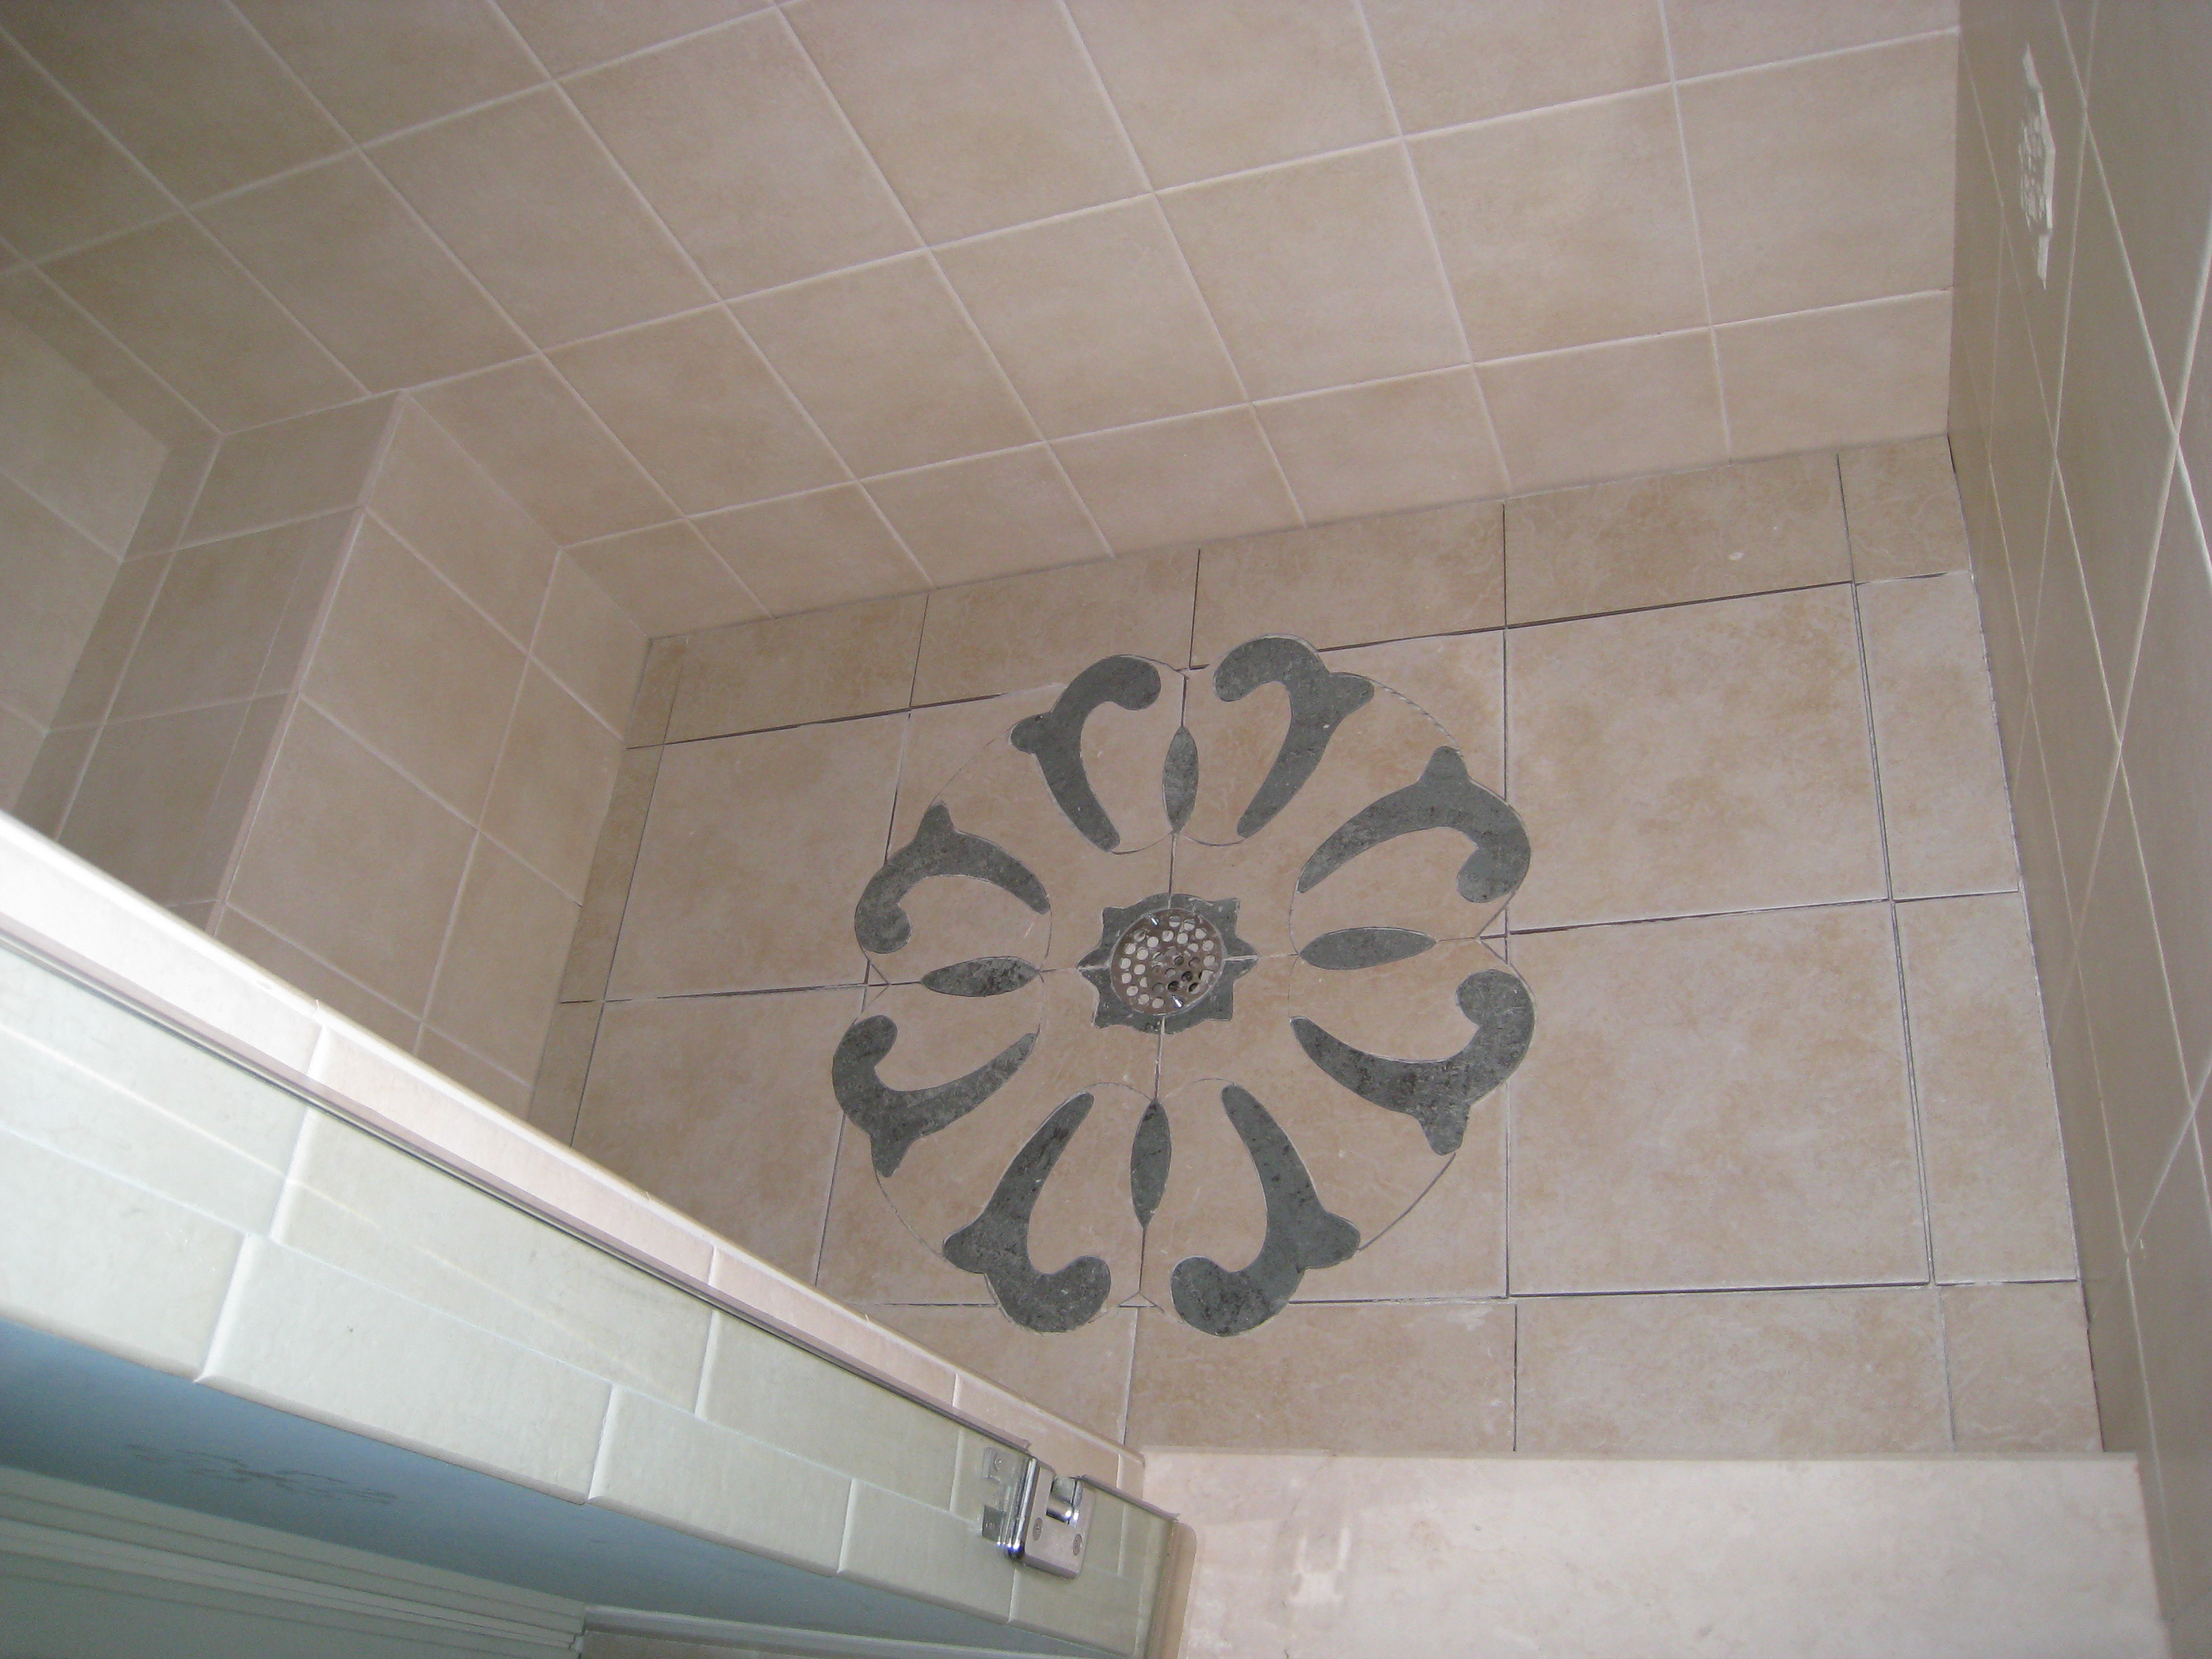 Wallpaper Design on Shower Floor